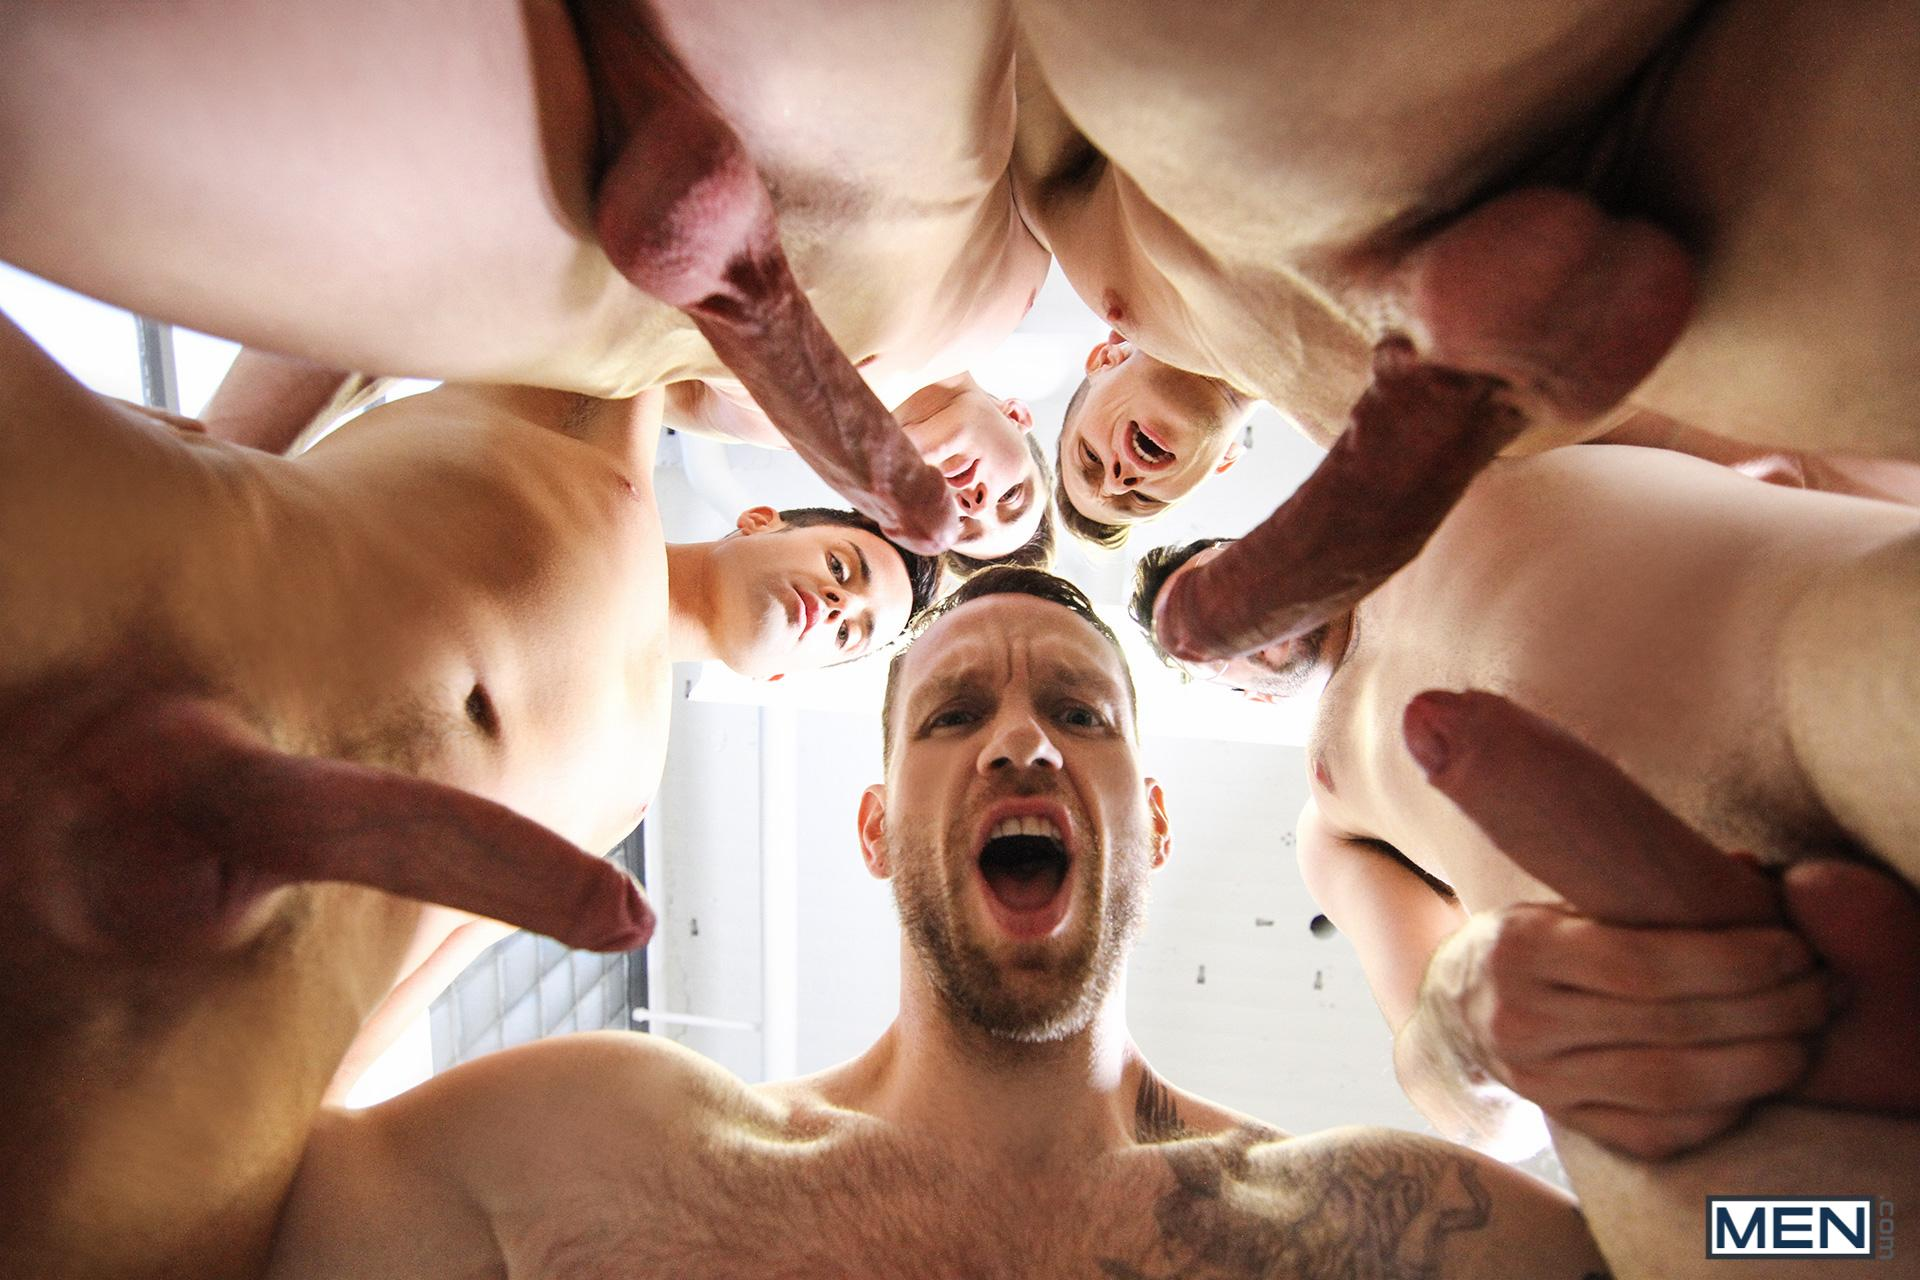 Guys showing their cocks